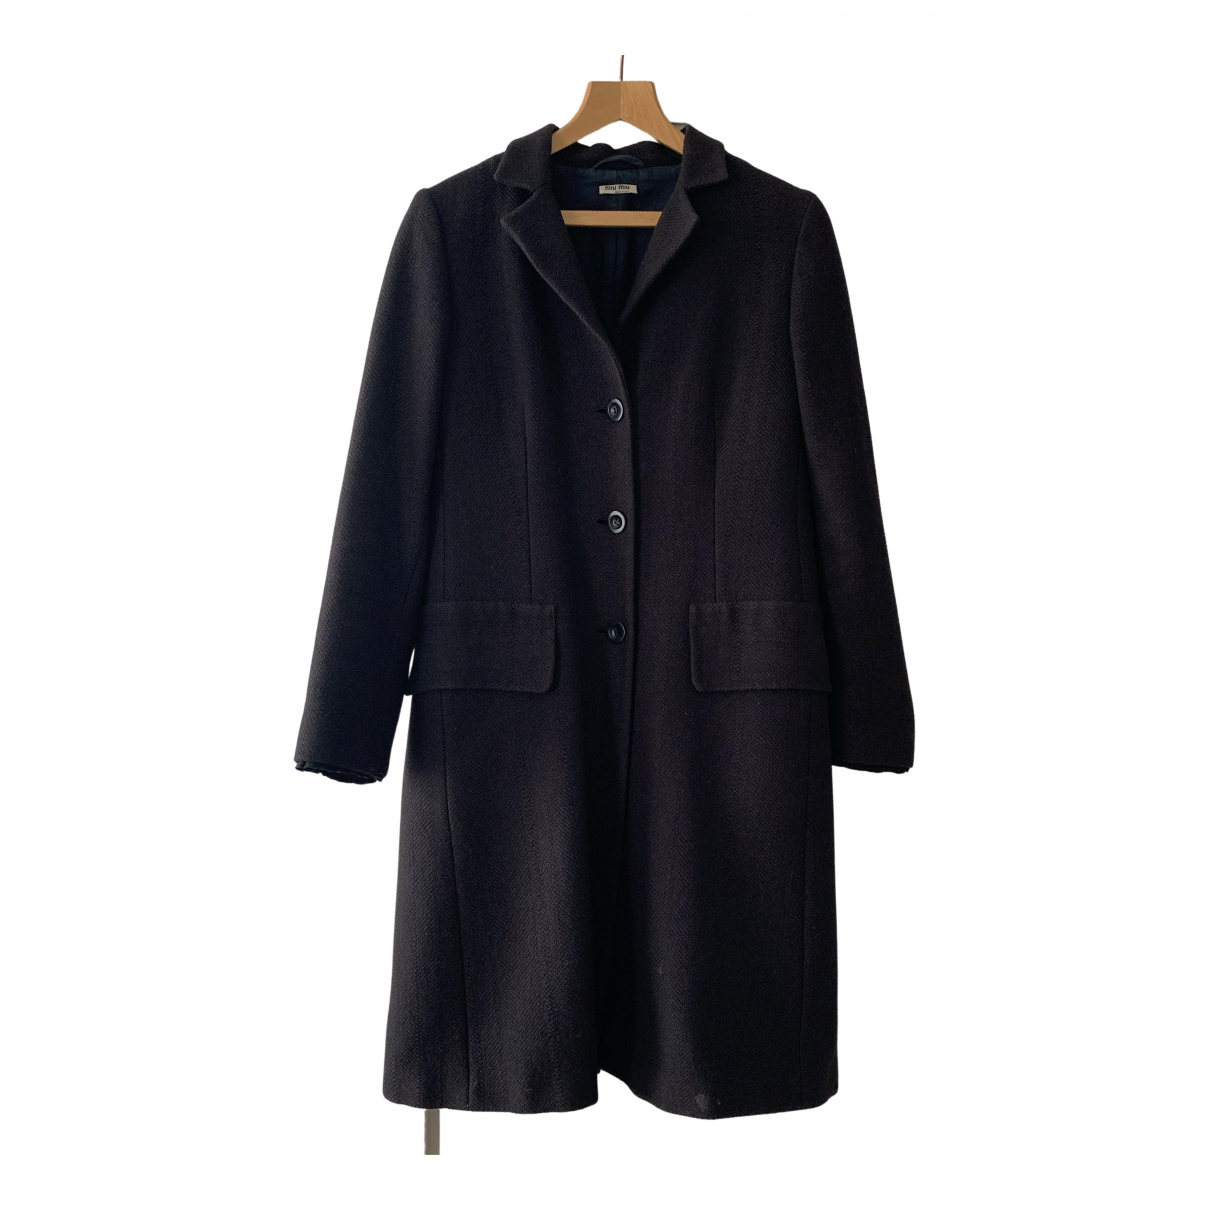 Miu Miu N Brown Wool coat for Women 44 IT